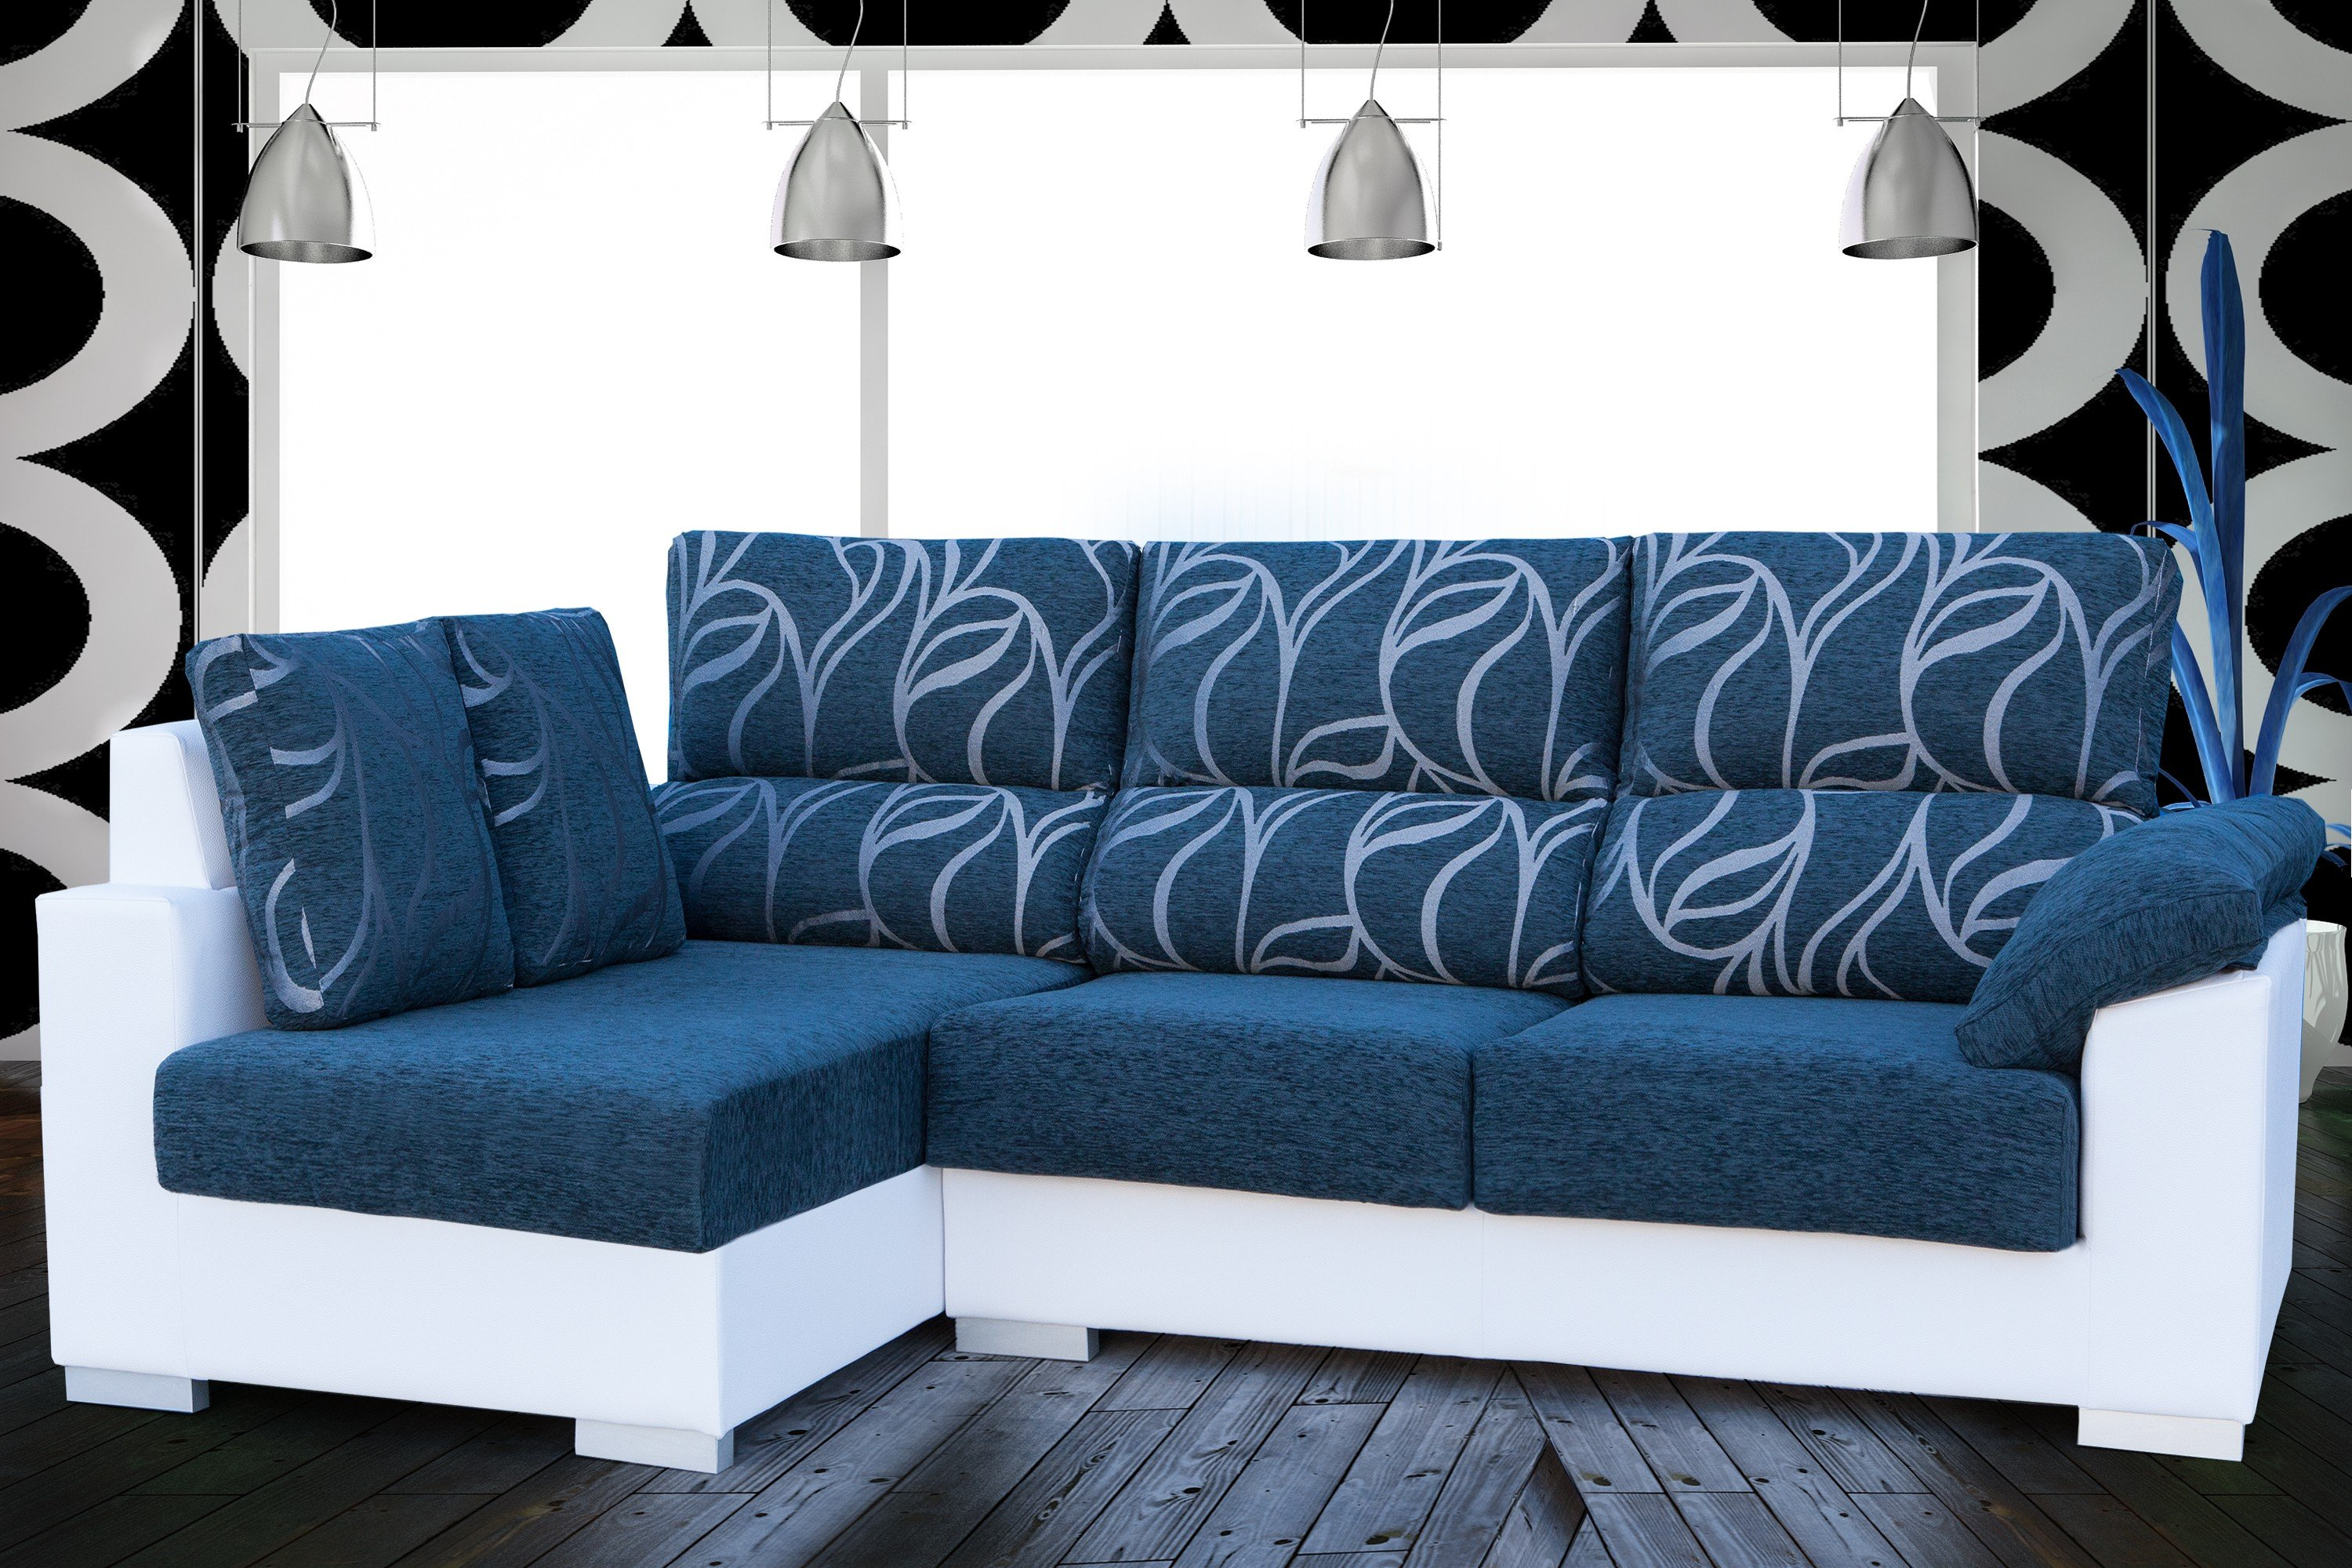 Sof s kal 05 sofas chaise longue sofas cama sillones for Sillones chaise longue